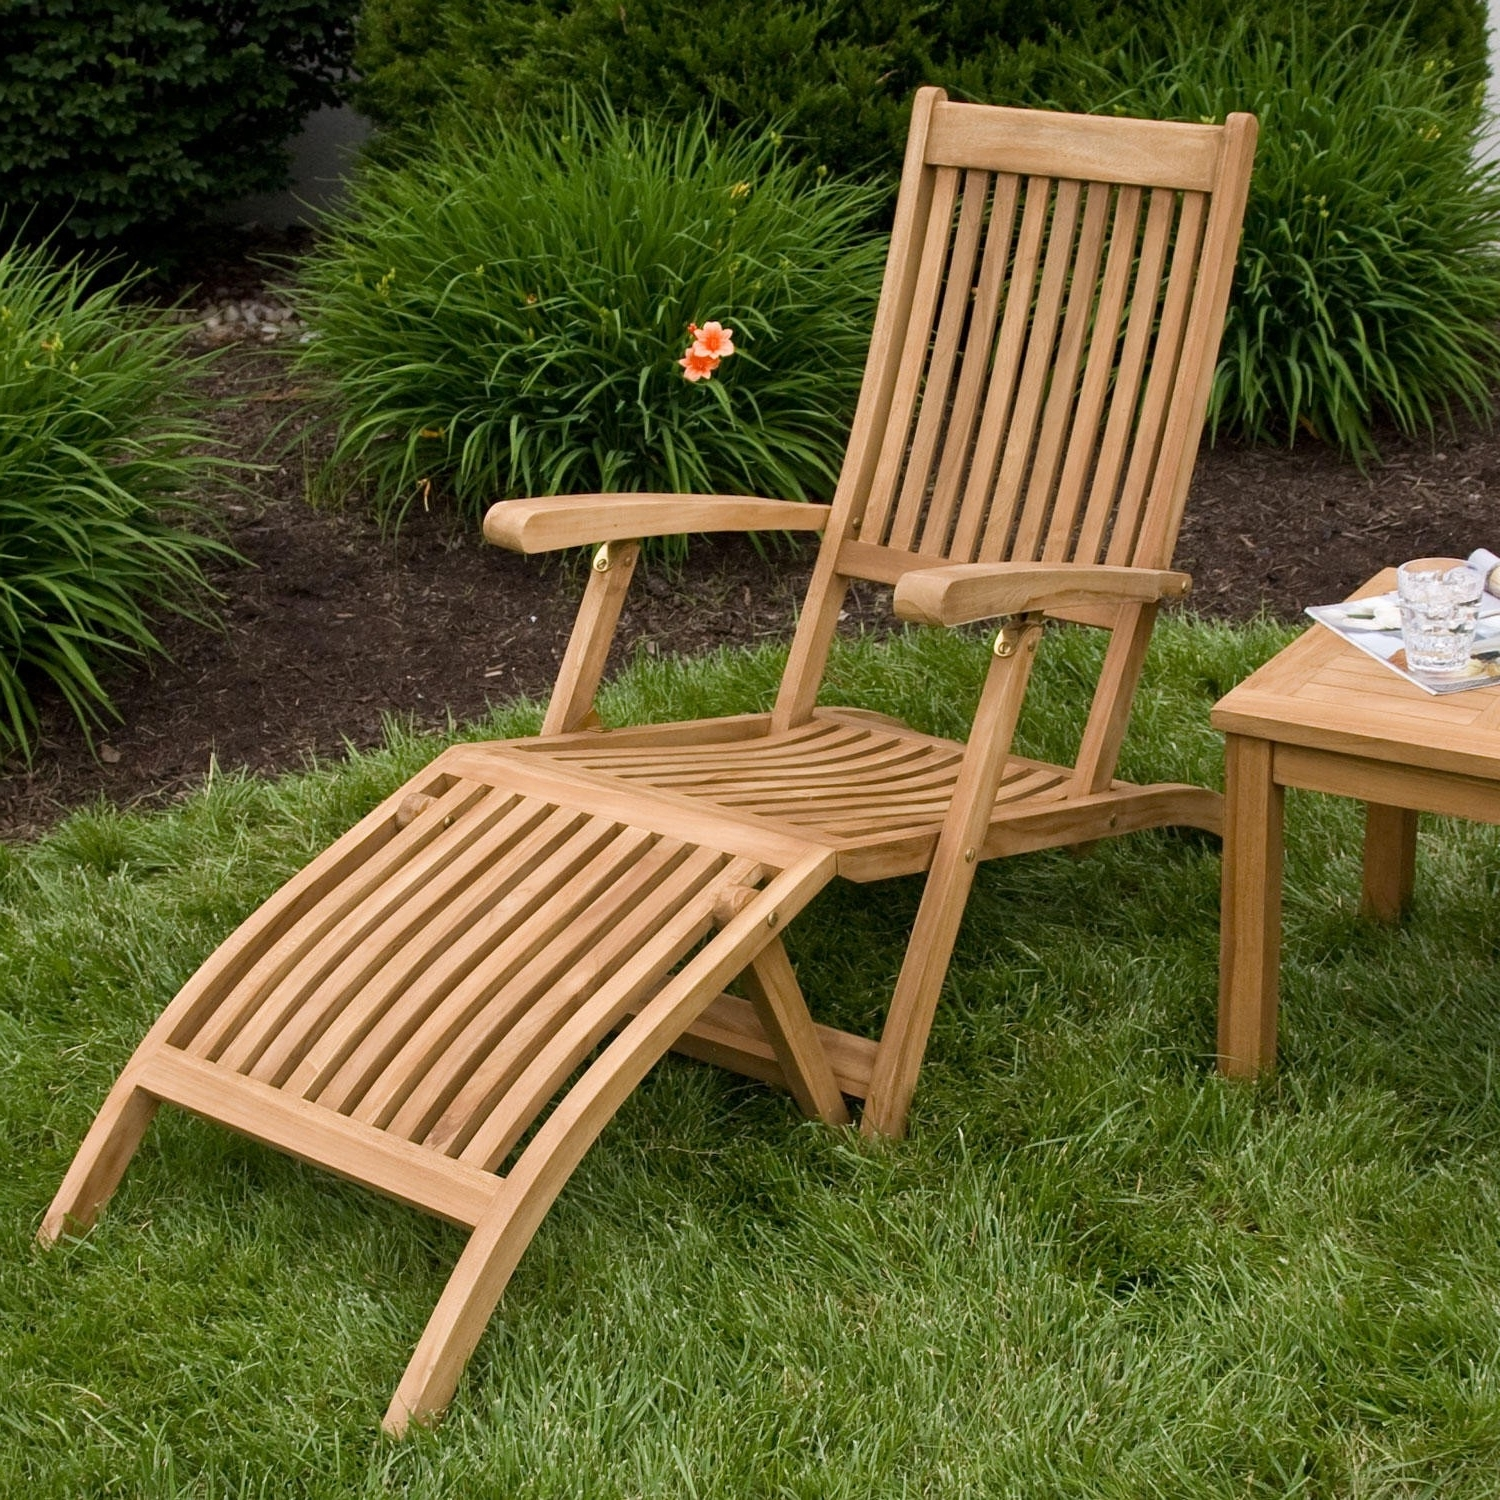 Holley Teak Outdoor Folding Steamer Lounge Chair – Outdoor Regarding Newest Folding Chaise Lounge Chairs For Outdoor (View 8 of 15)